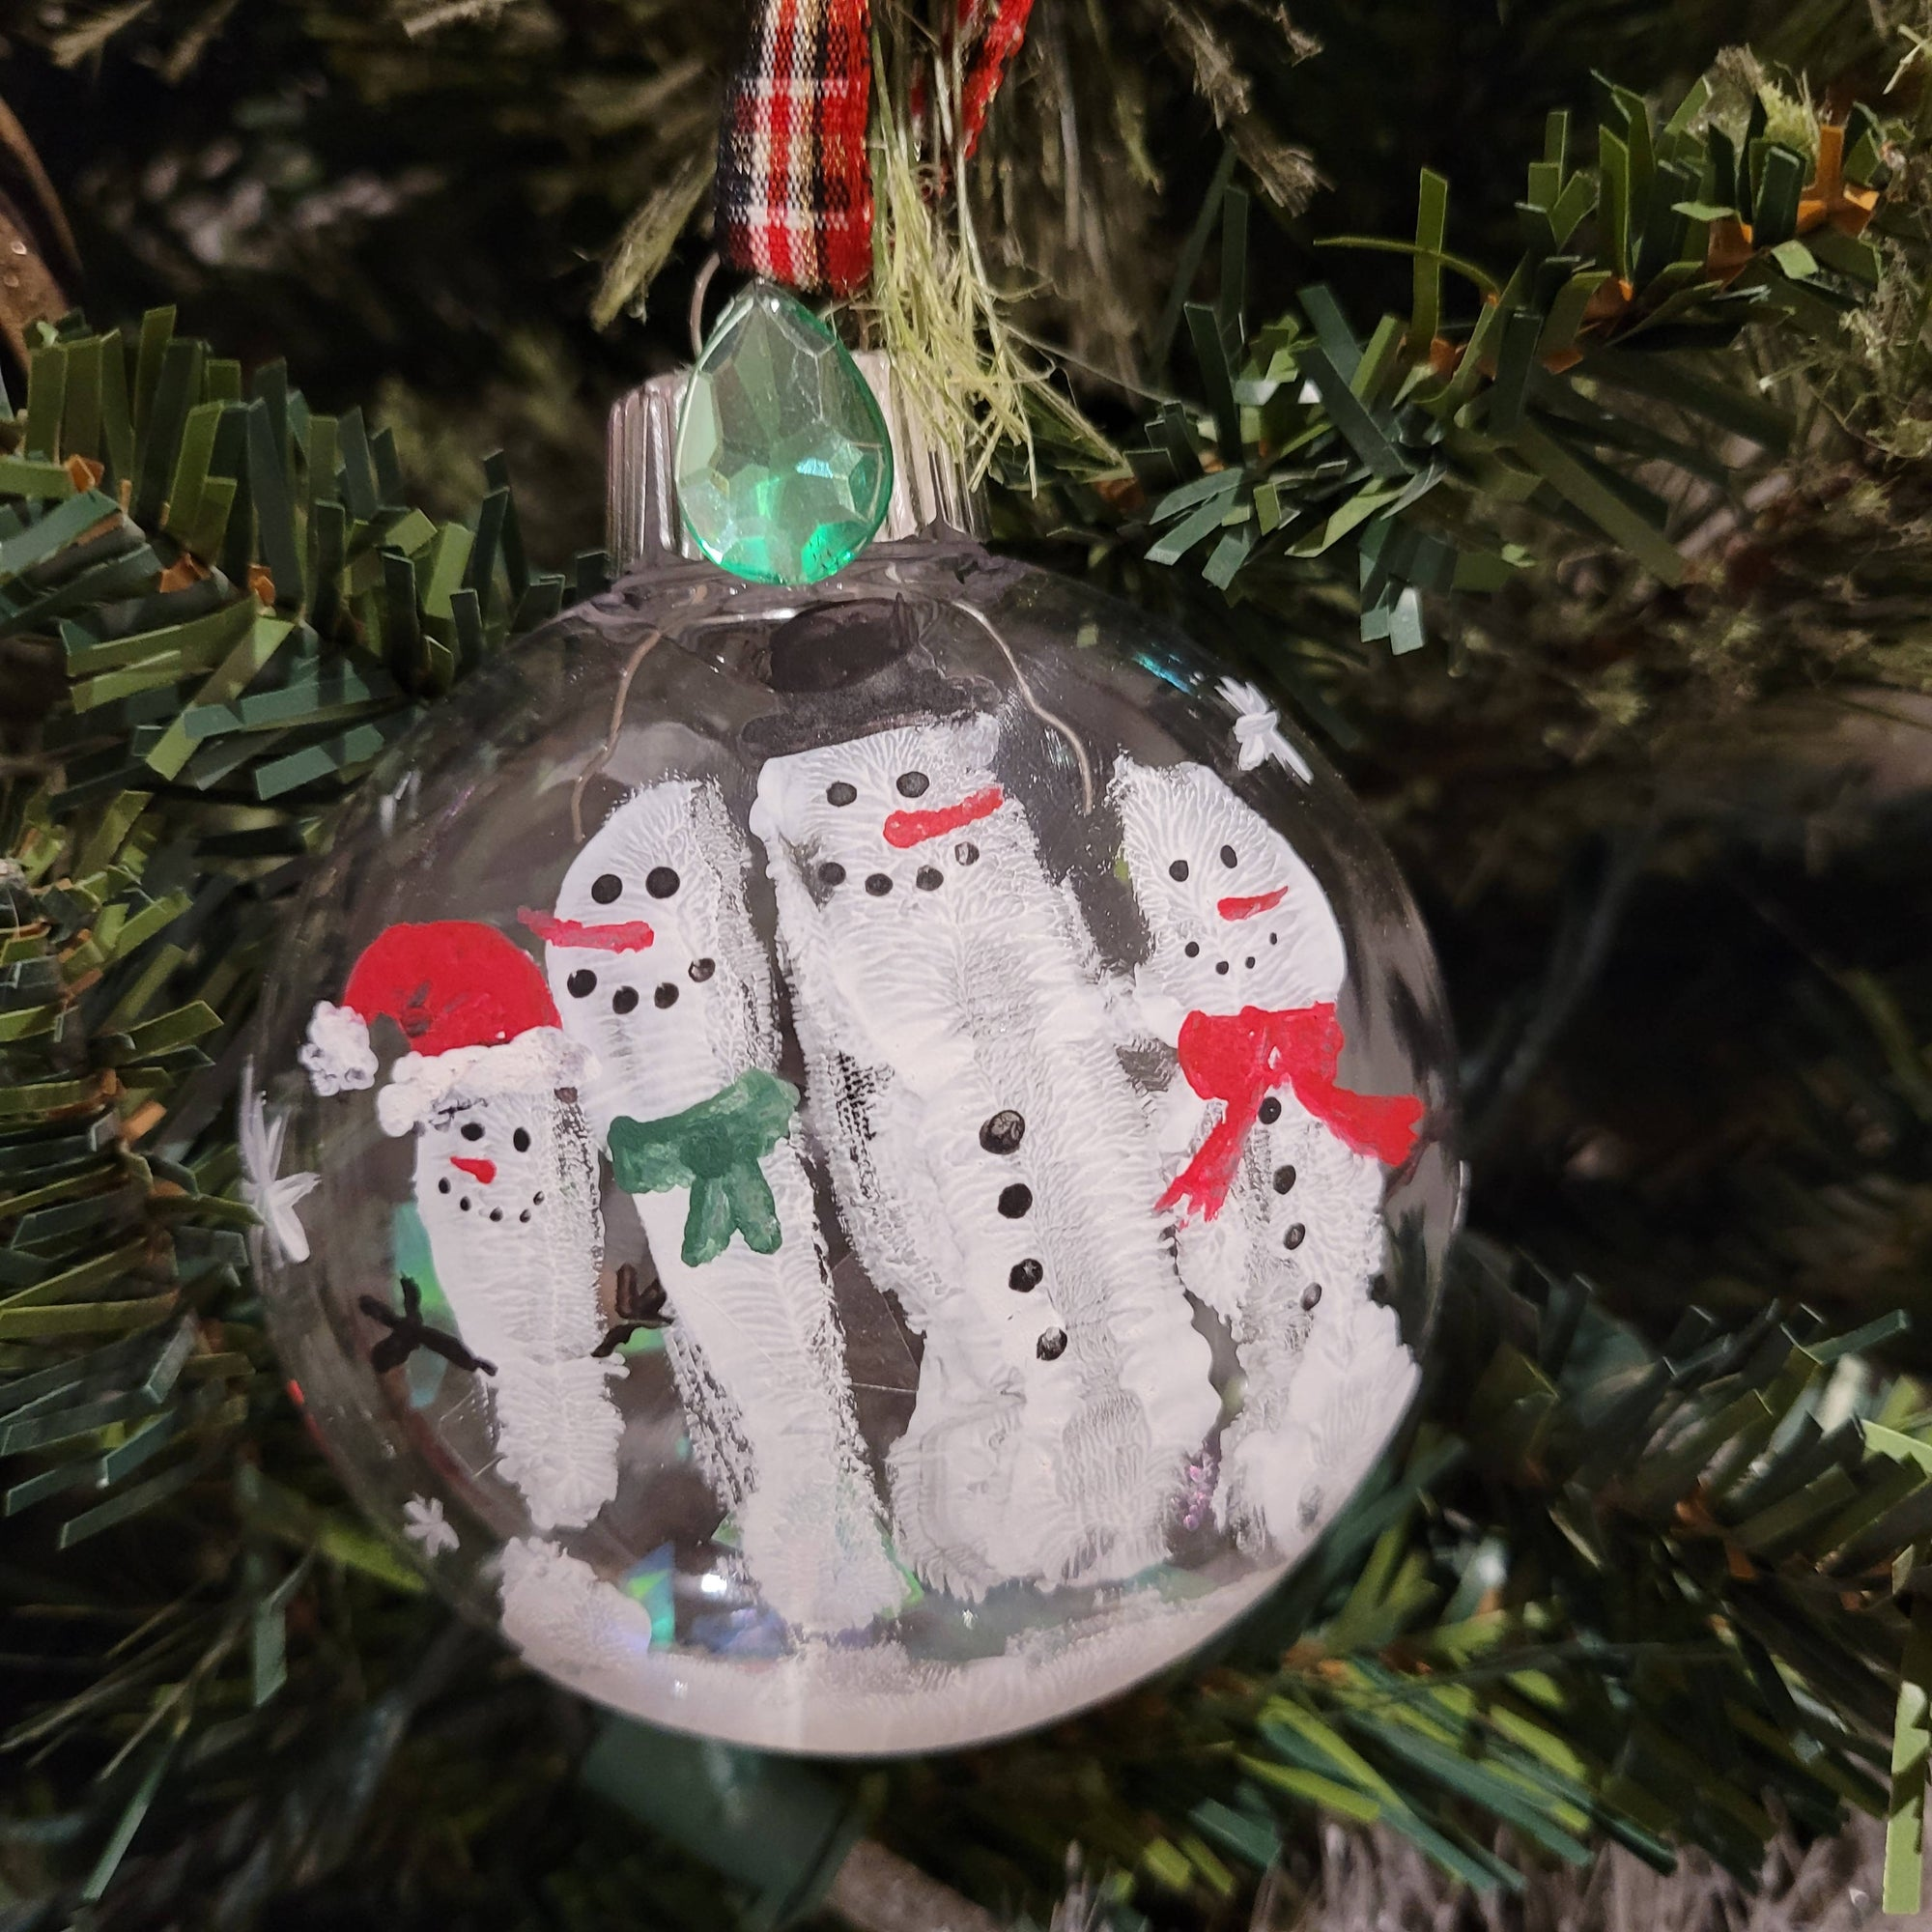 DIY snowman ornament kit